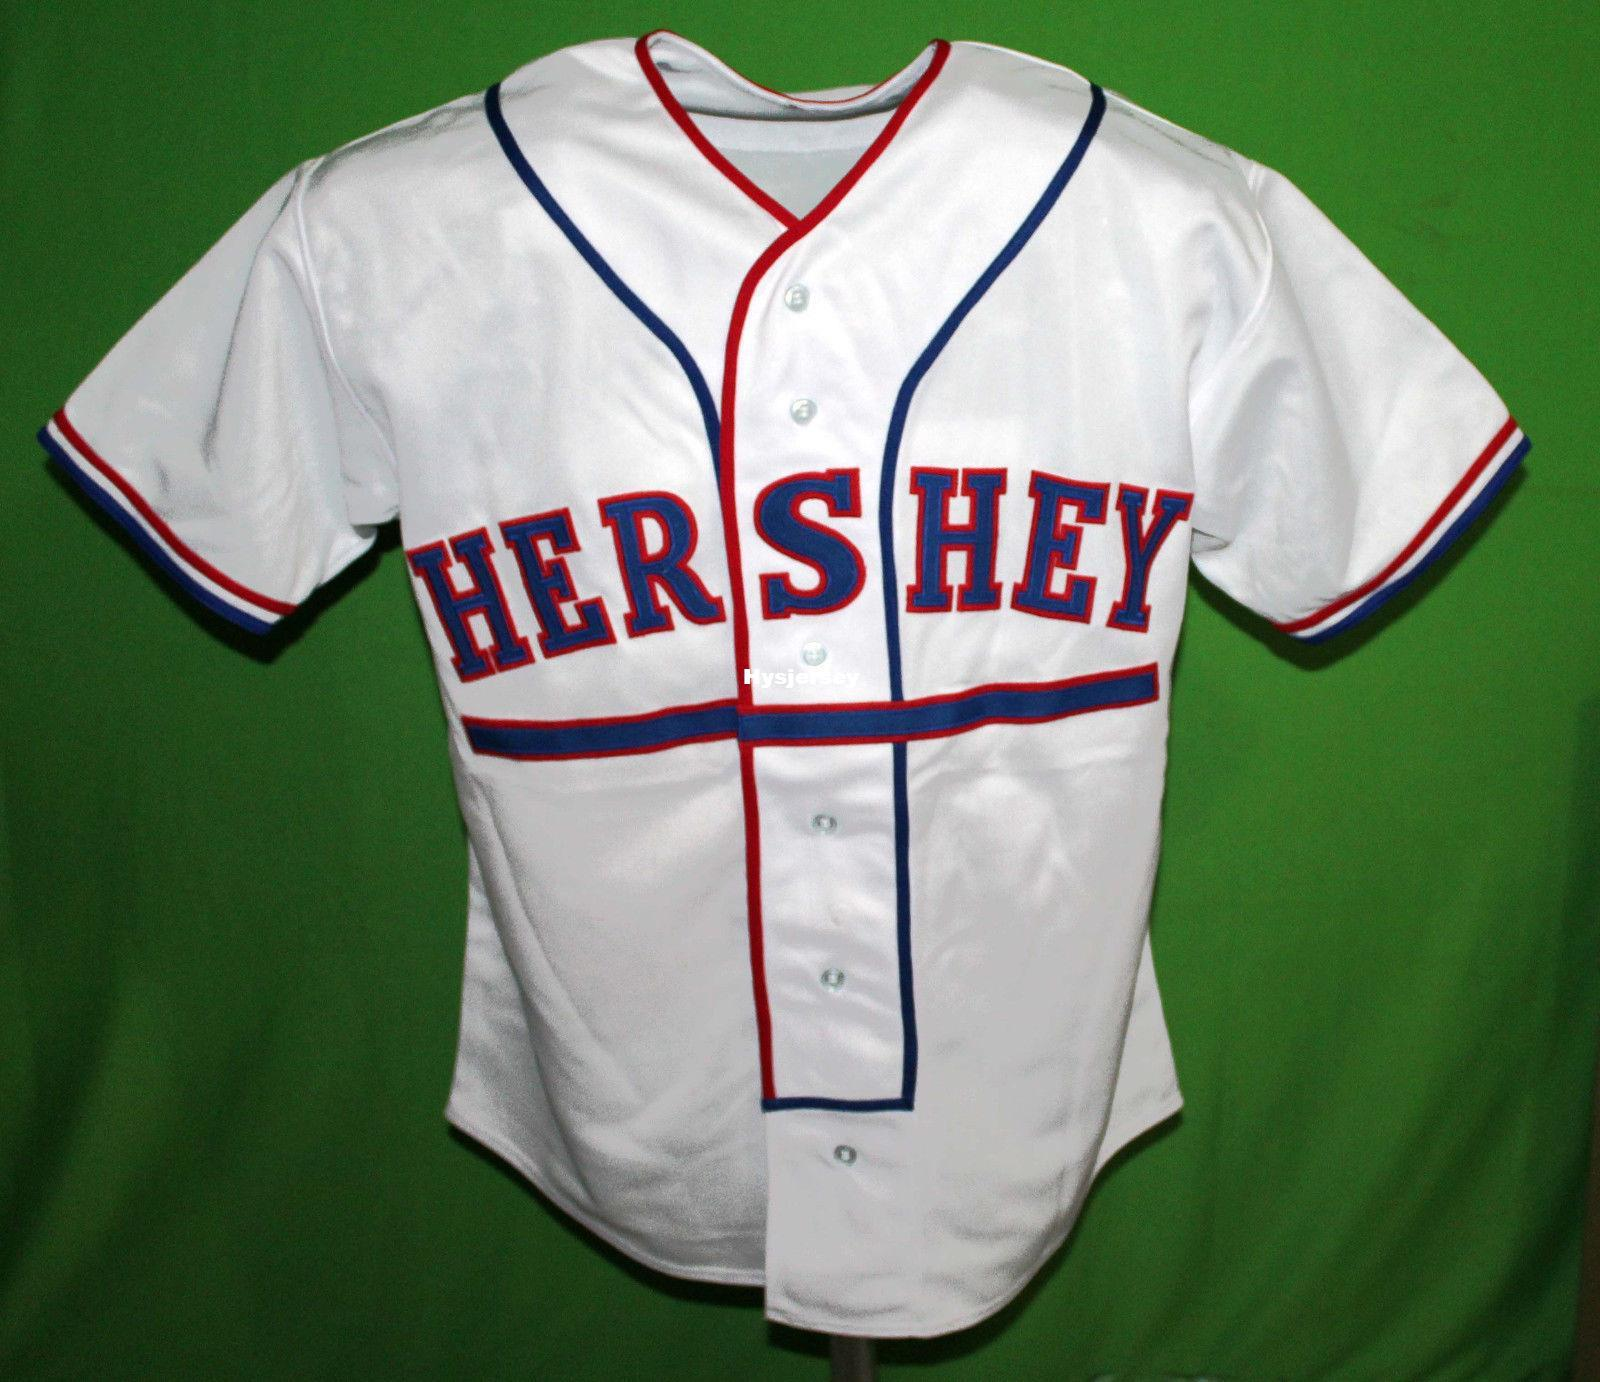 info for ffcd4 03bae Cheap Retro HERSHEY #7 1956 Home BASEBALL JERSEY Or Custom any number any  Mens Vintage jerseys XS - 5XL